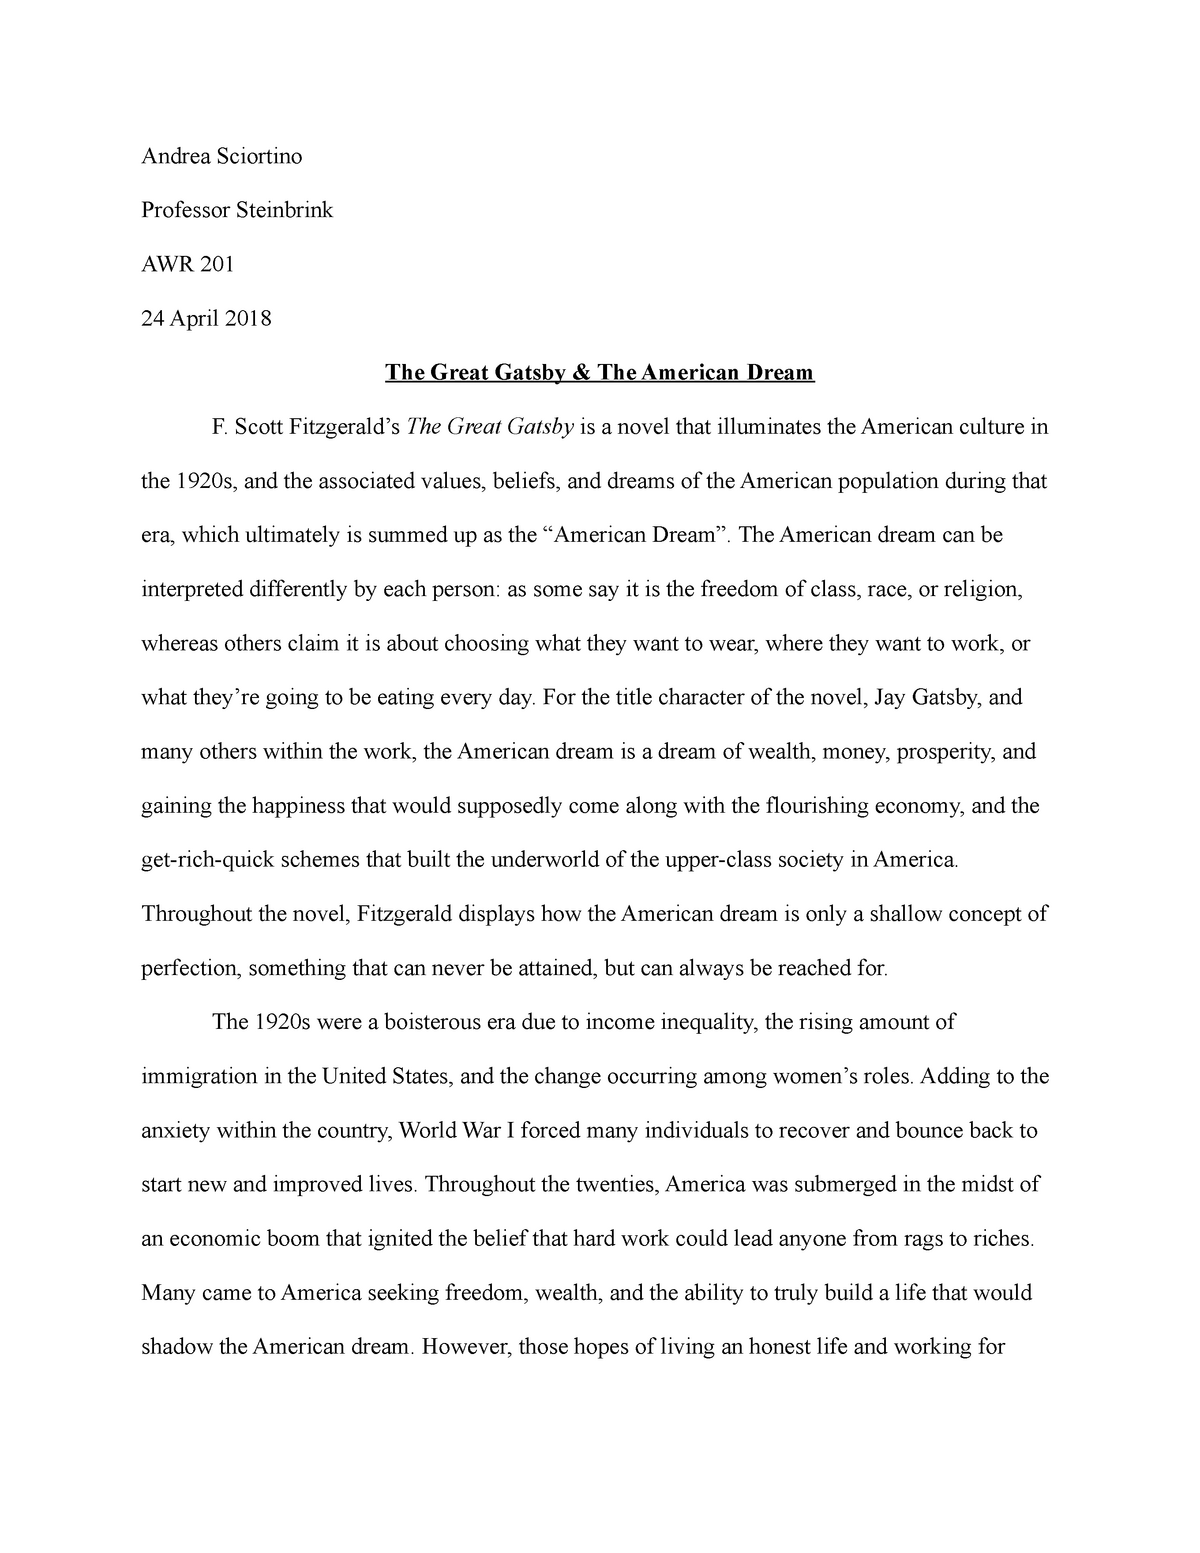 The Great Gatsby American Dream Essay